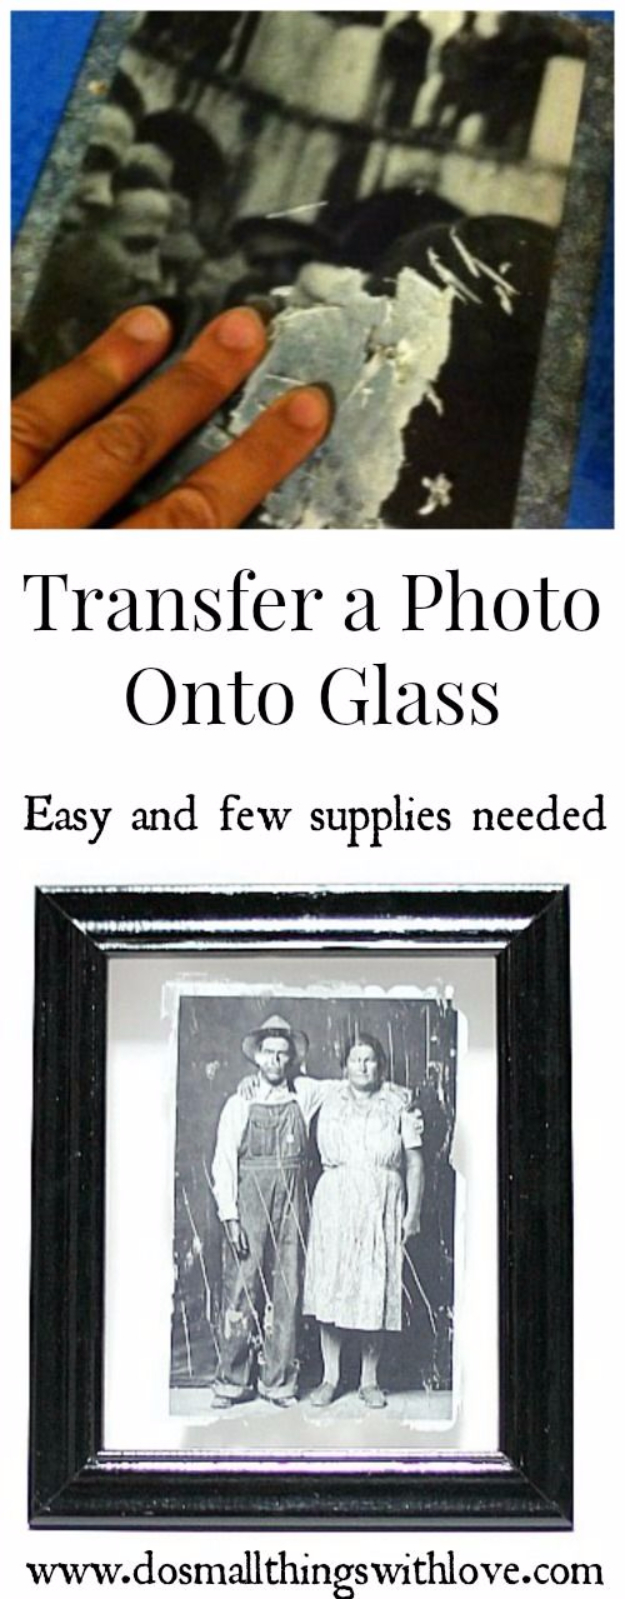 DIY Photo Crafts and Projects for Pictures - Photo Transfer Onto Glass - Handmade Picture Frame Ideas and Step by Step Tutorials for Making Cool DIY Gifts and Home Decor - Cheap and Easy Photo Frames, Creative Ways to Frame and Mount Photos on Canvas and Display Them In Your House http://diyjoy.com/handmade-photo-crafts